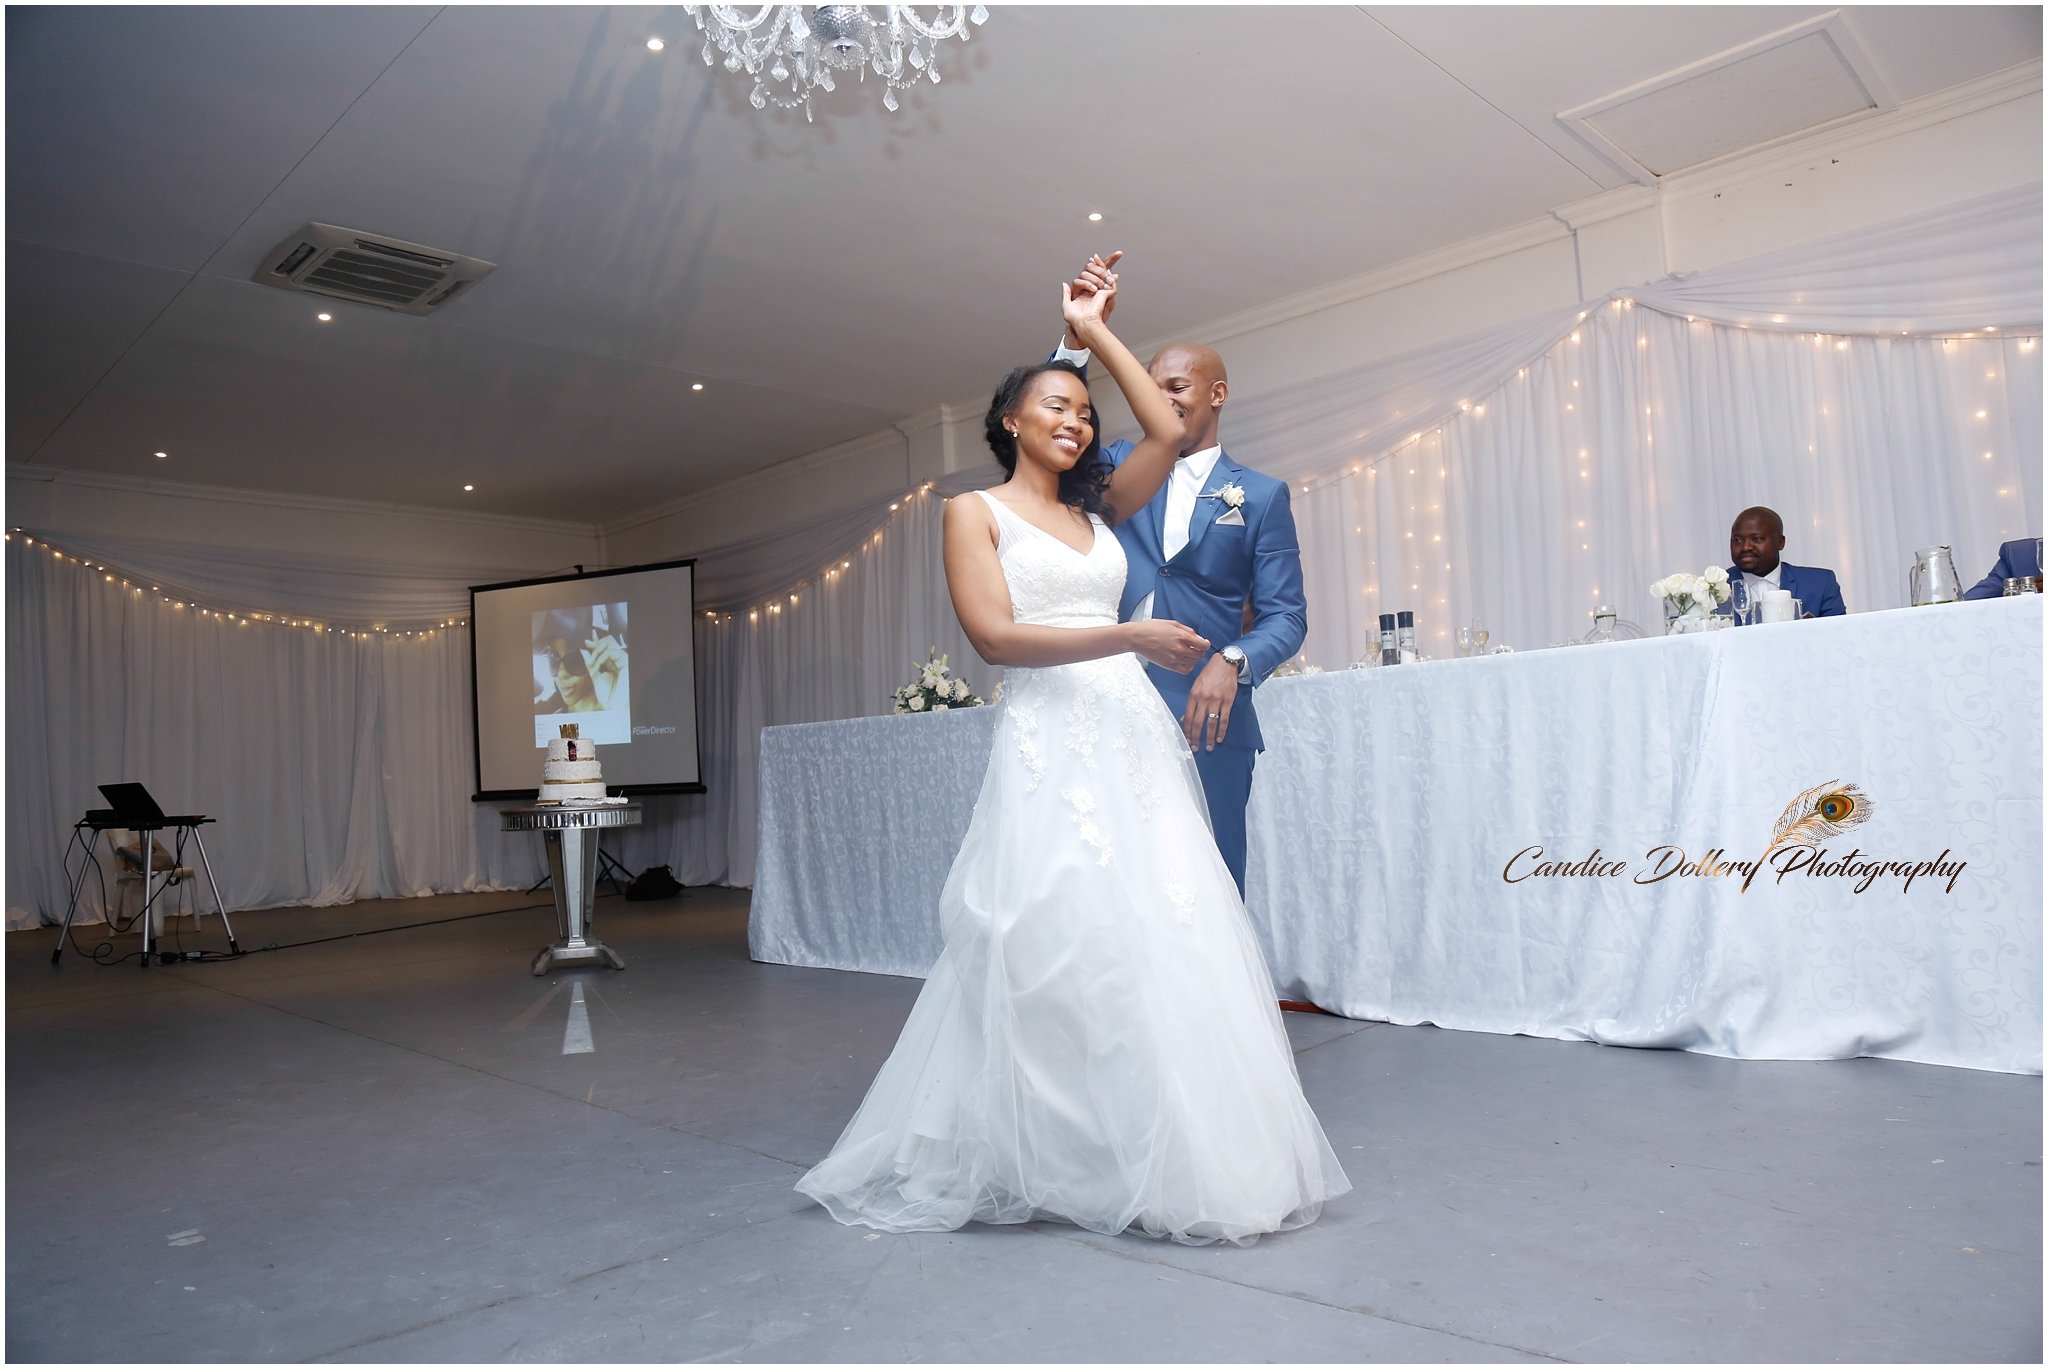 lelethu-kgotsos-wedding-candice-dollery-photography_1745